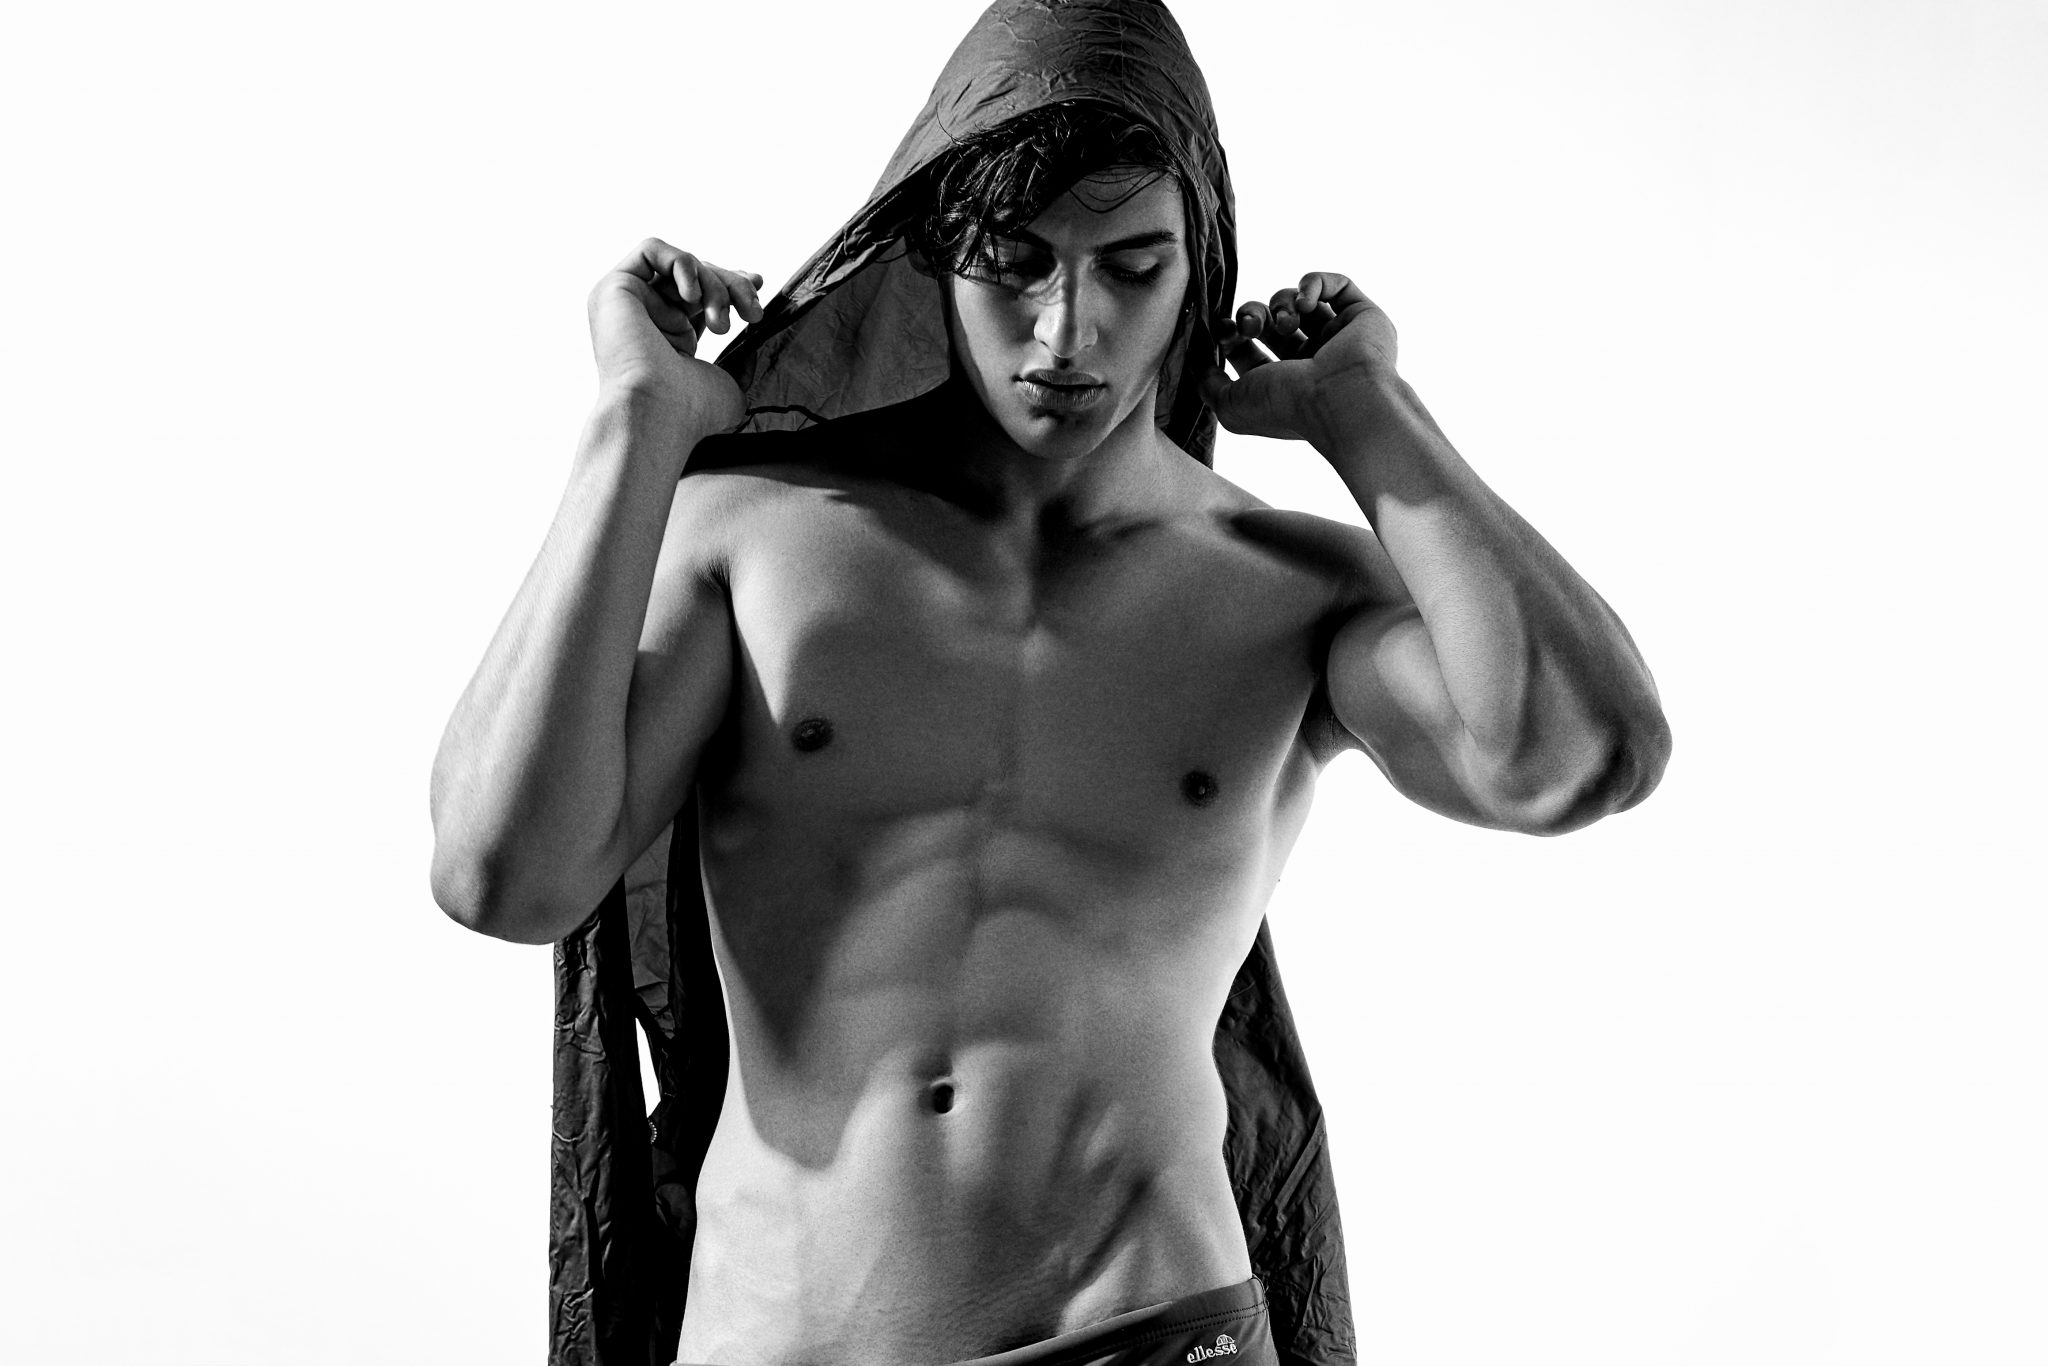 Henrique Fraga by Pedro Fonseca for Brazilian Male Model